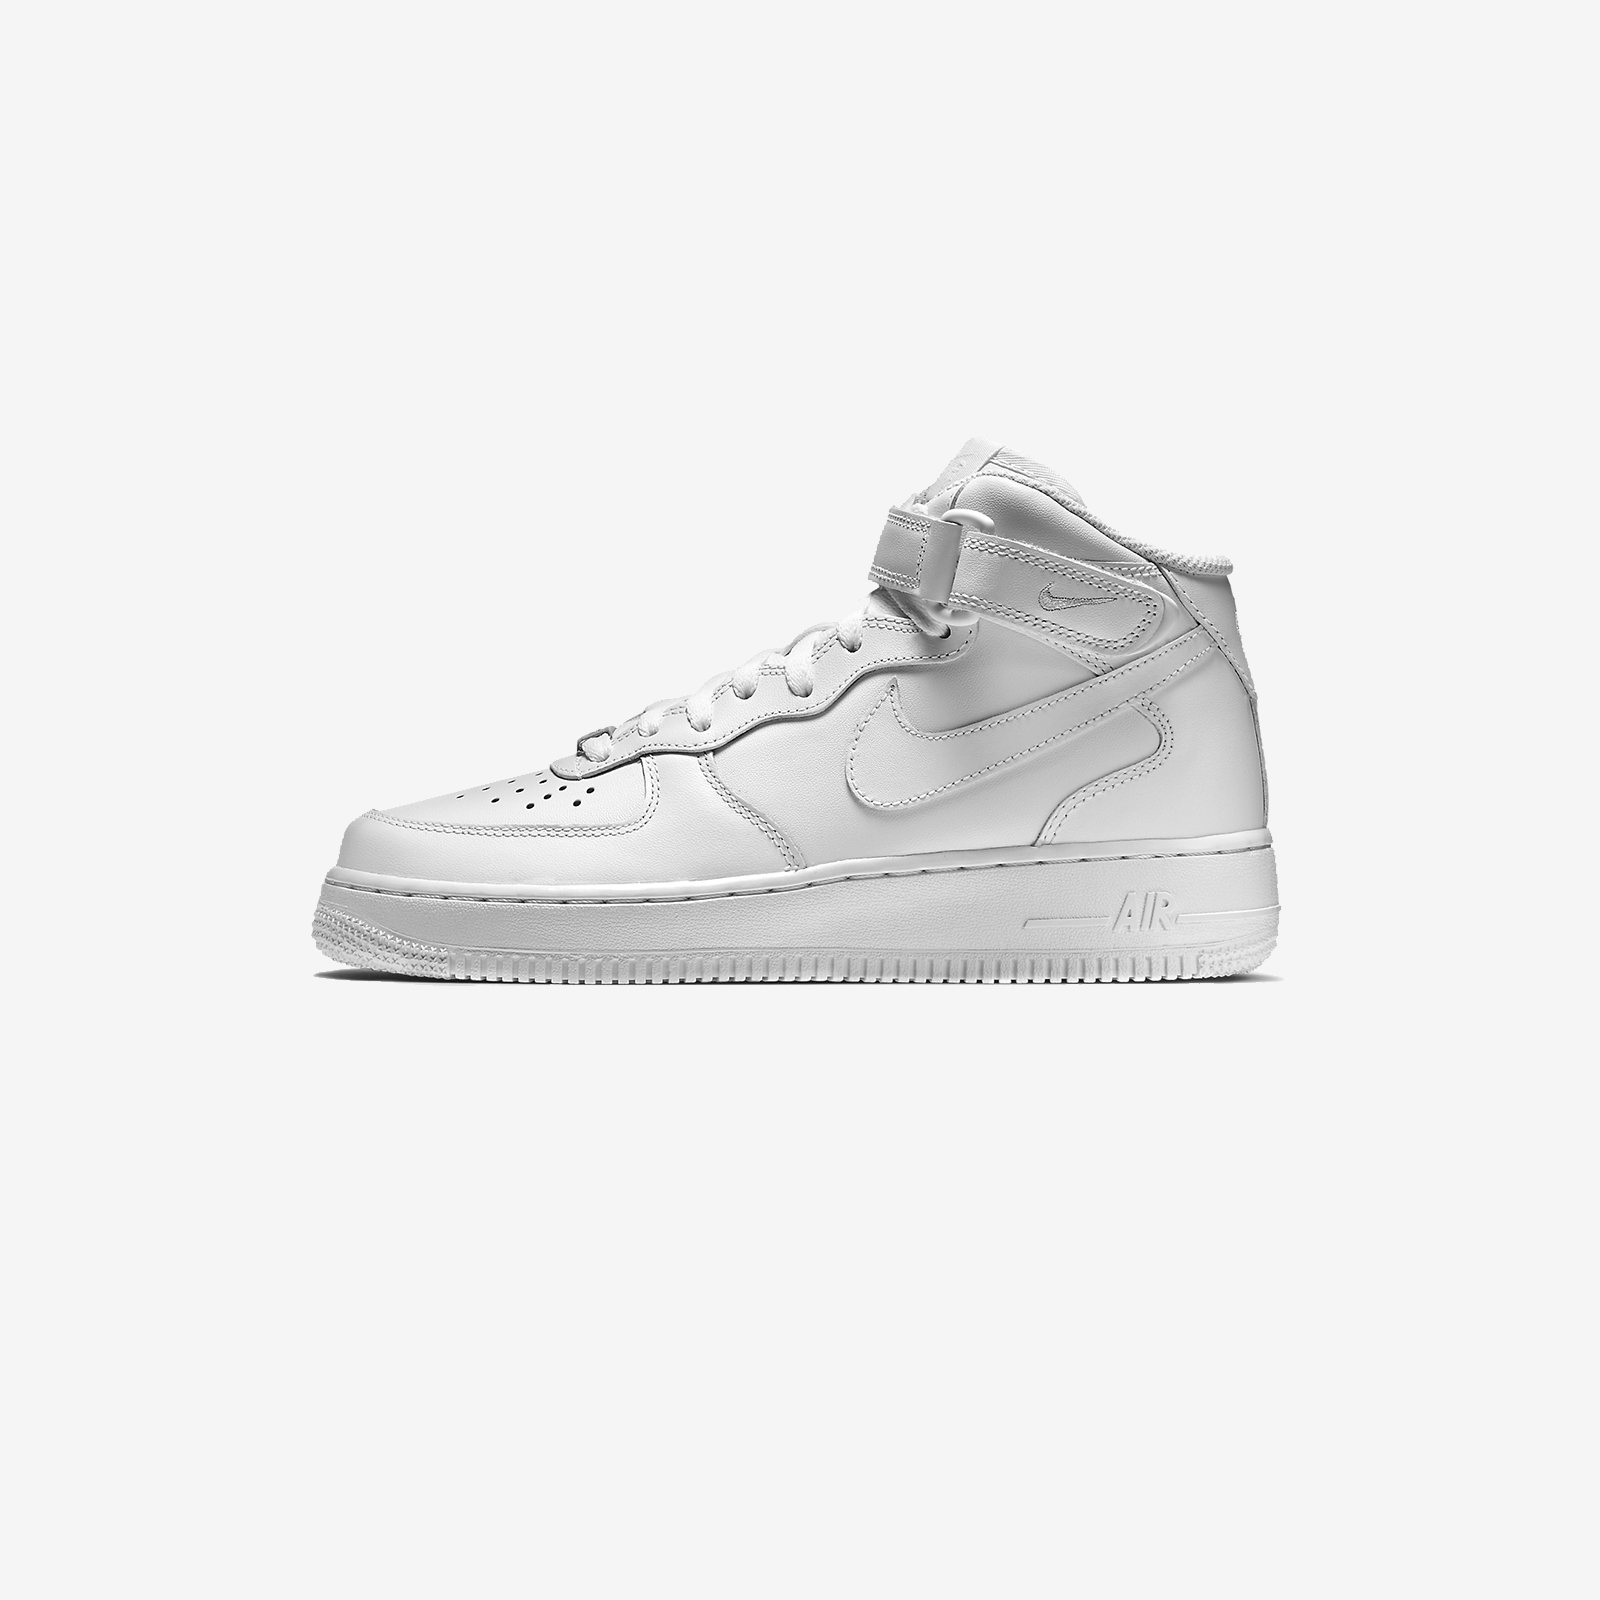 Nike Wmns Air Force 1 Mid 07 LE - 366731-100 - SNS | sneakers ...